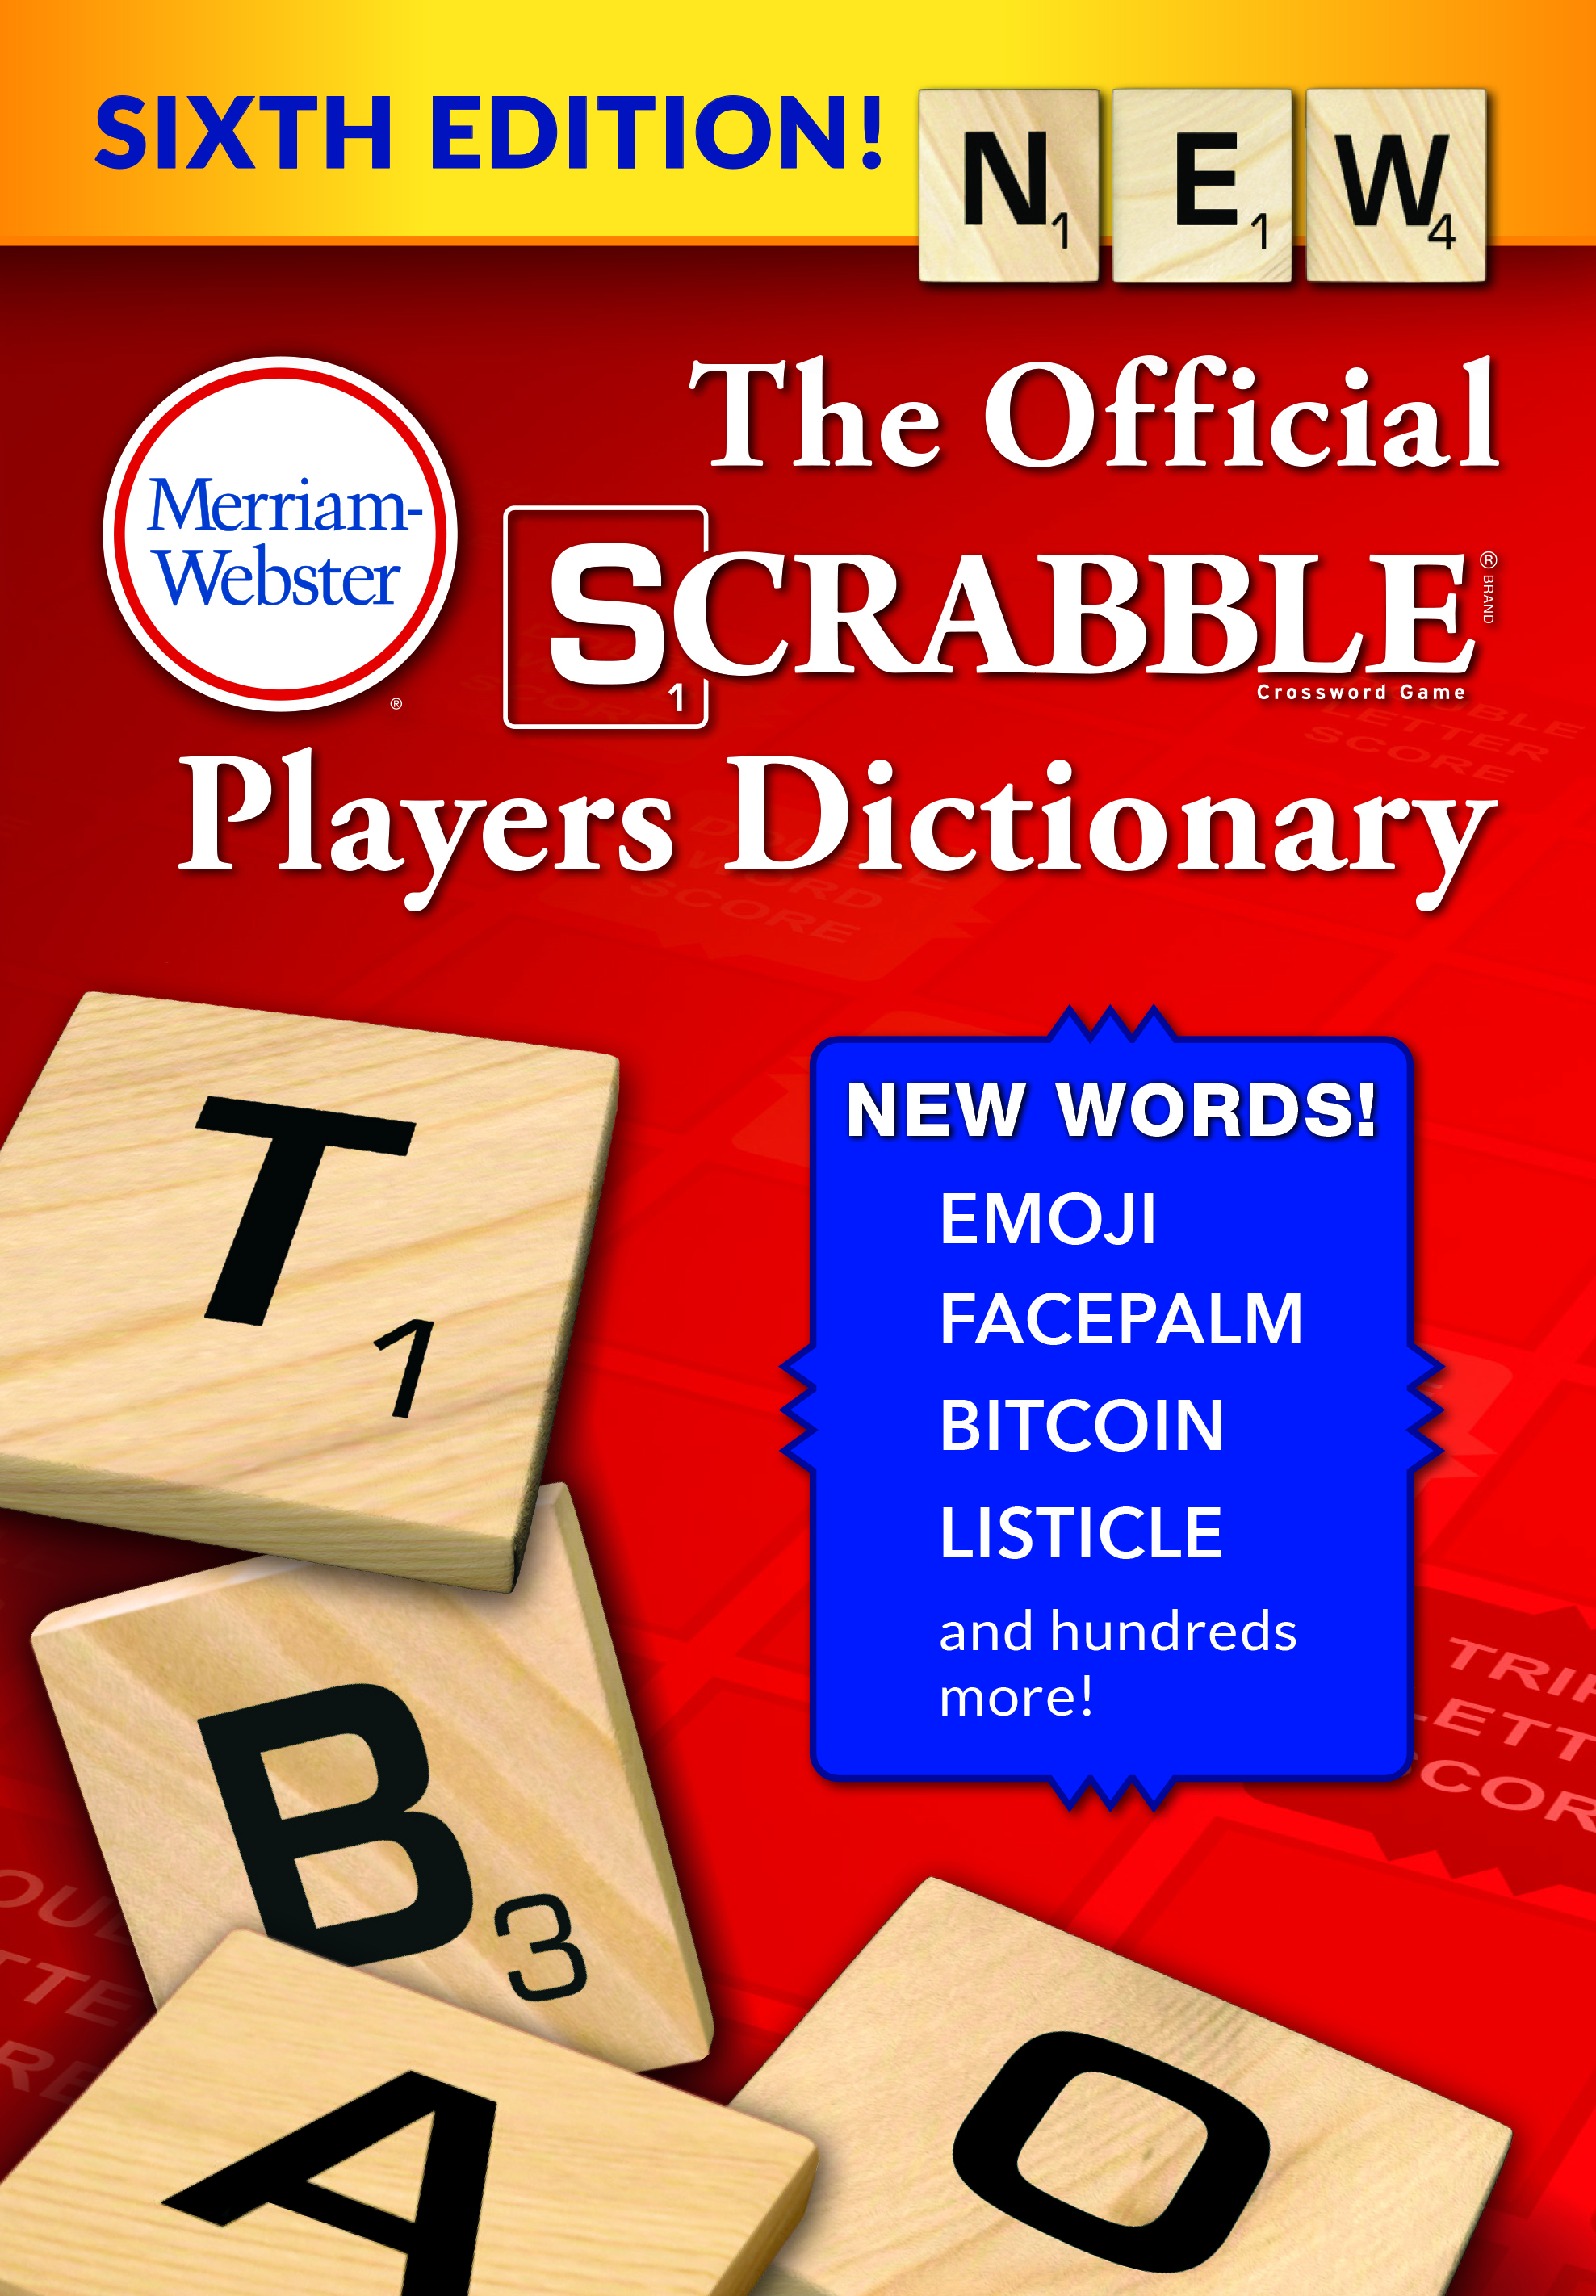 Merriam-Webster Adds Over 300 New Words to The Official